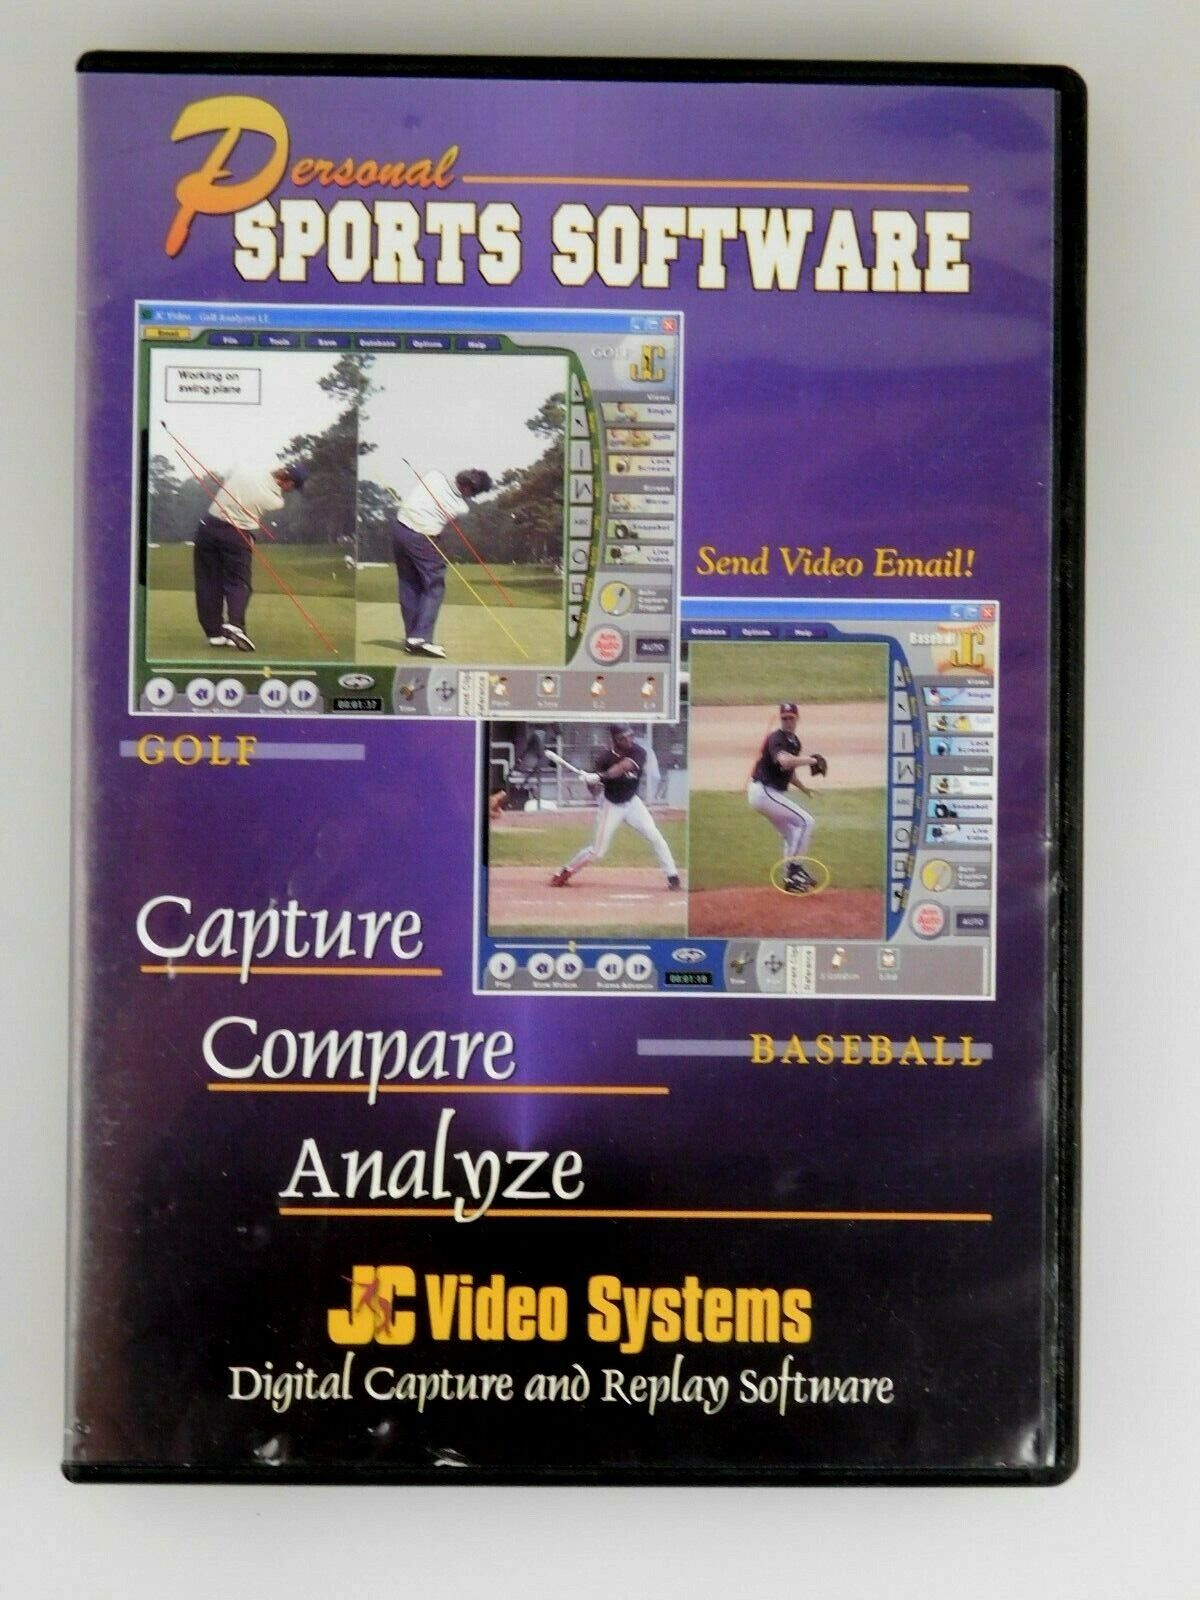 Personal Sports Software CD ROM - Capture Compare Replay - JC Video Systems